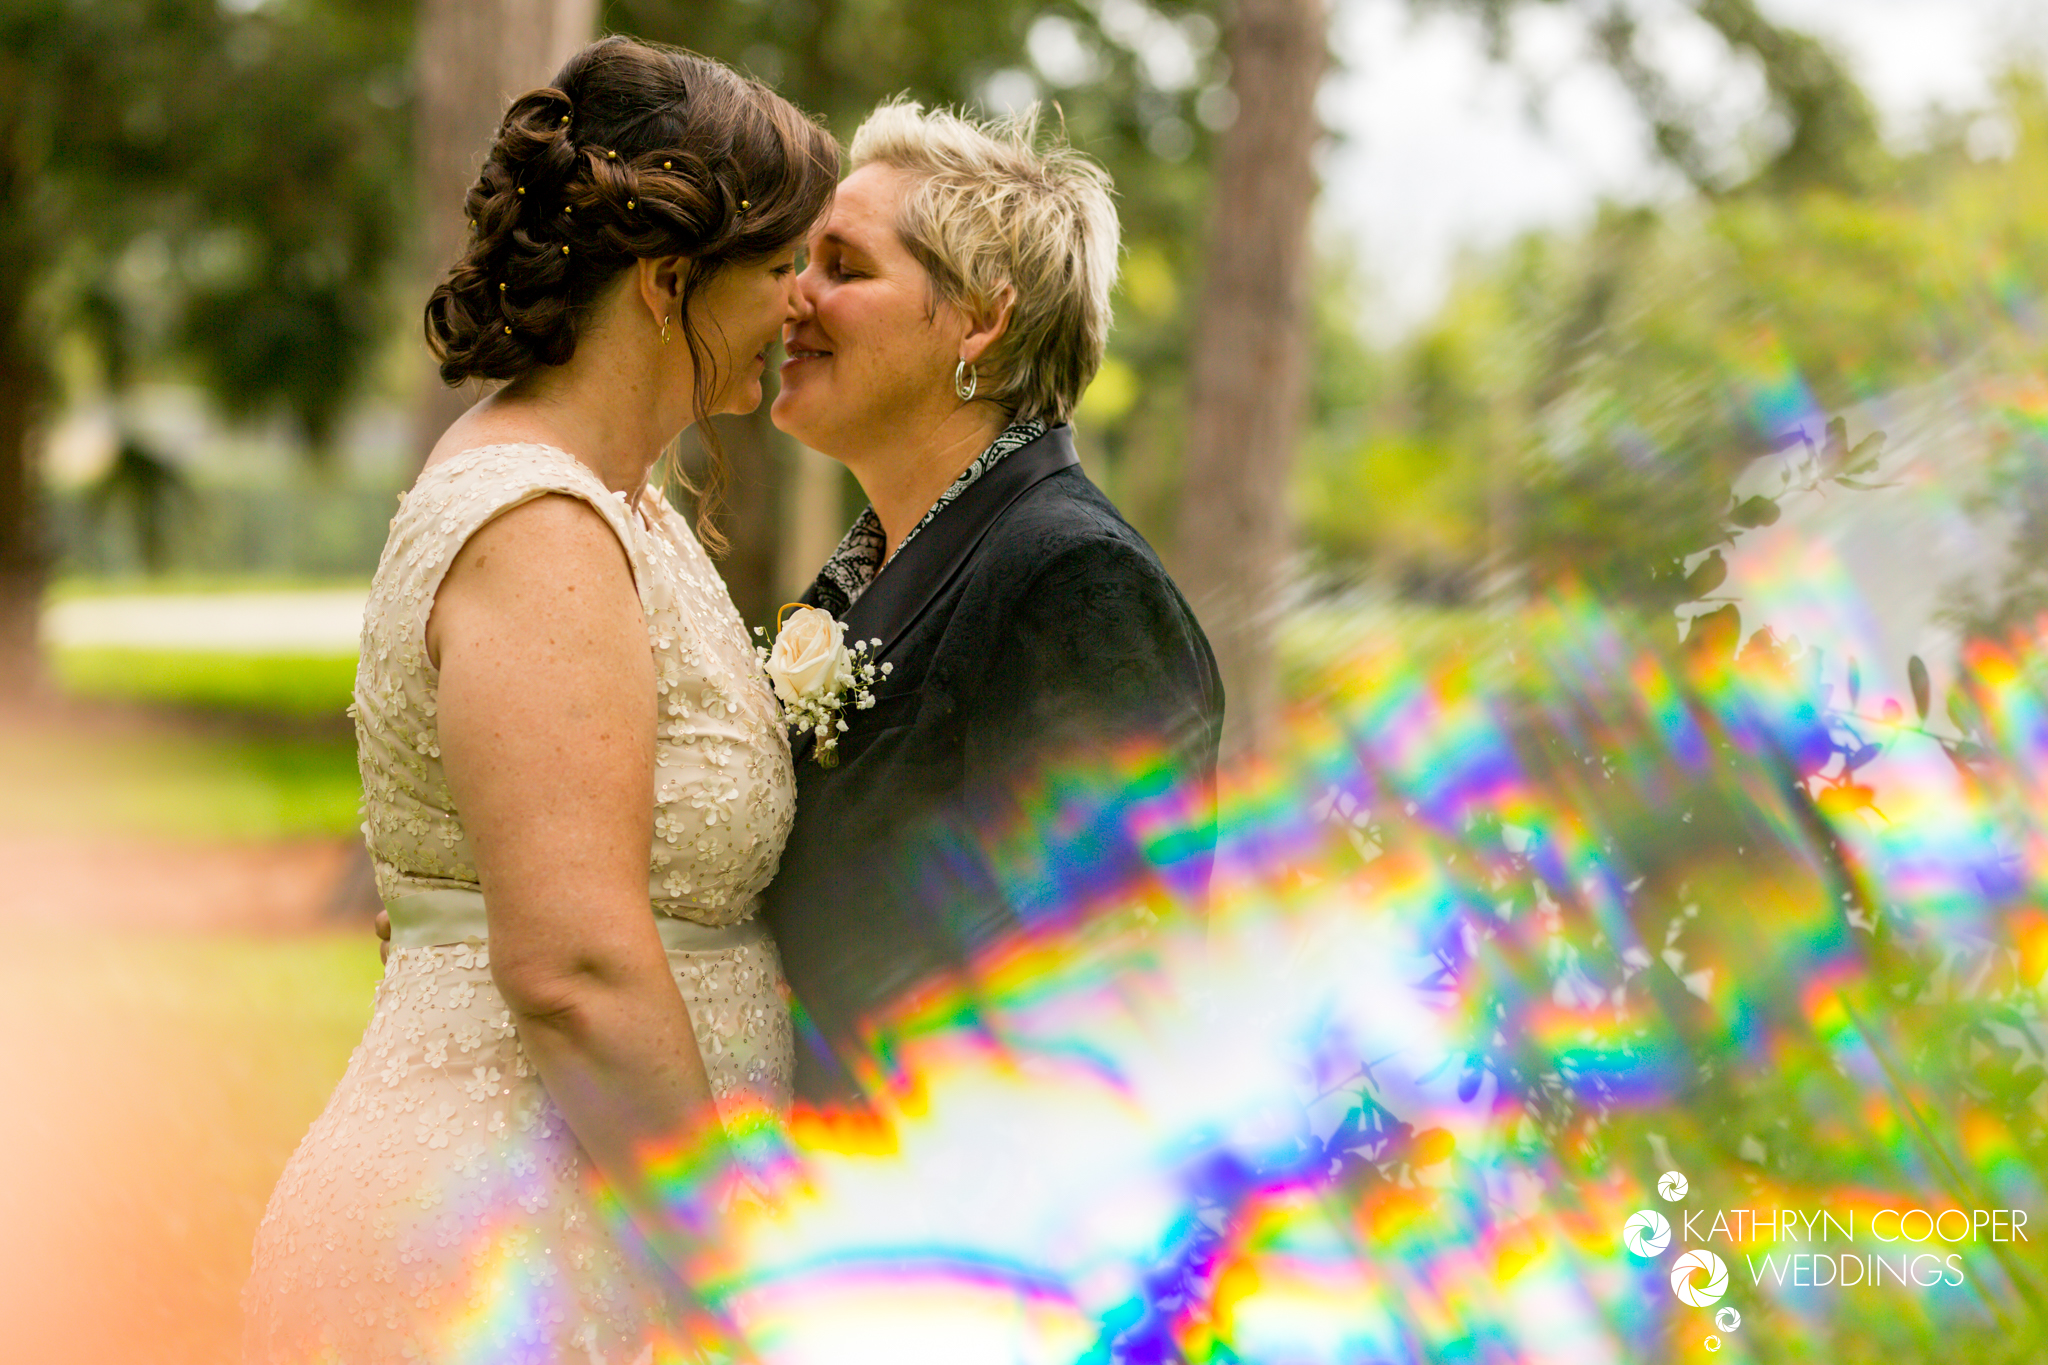 Prism photography, lesbian couple kissing LGBTQ wedding photographer in Orlando, Fla